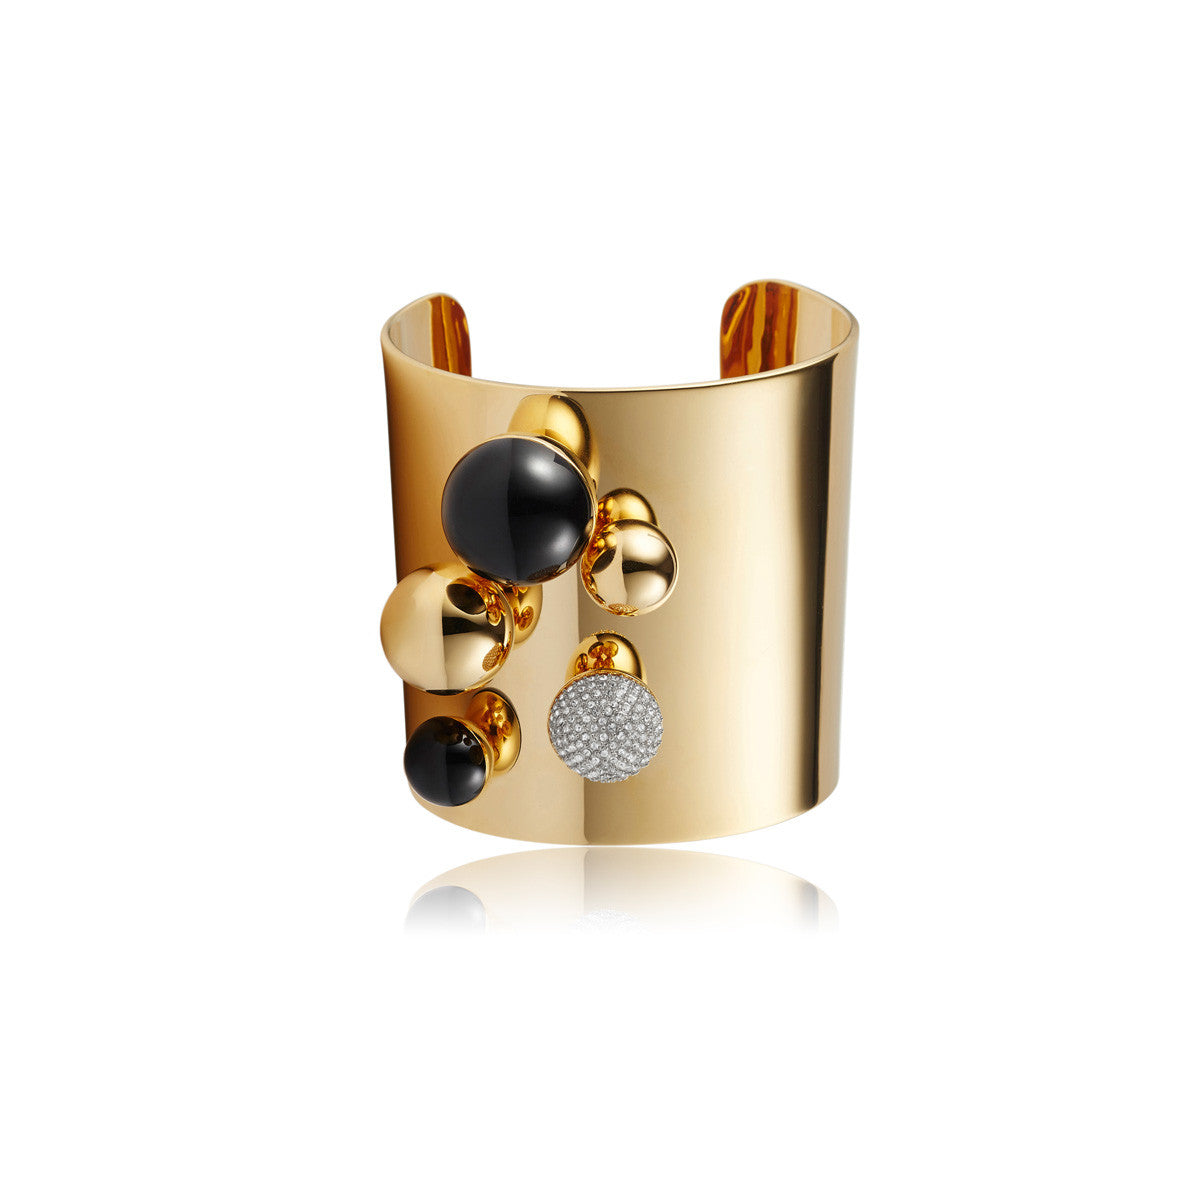 Solid brass, 18K gold plated Stellatus cuff bangle is topped with a cluster of spheres in Swarovski® crystal pavè detailing and natural black onyx - front